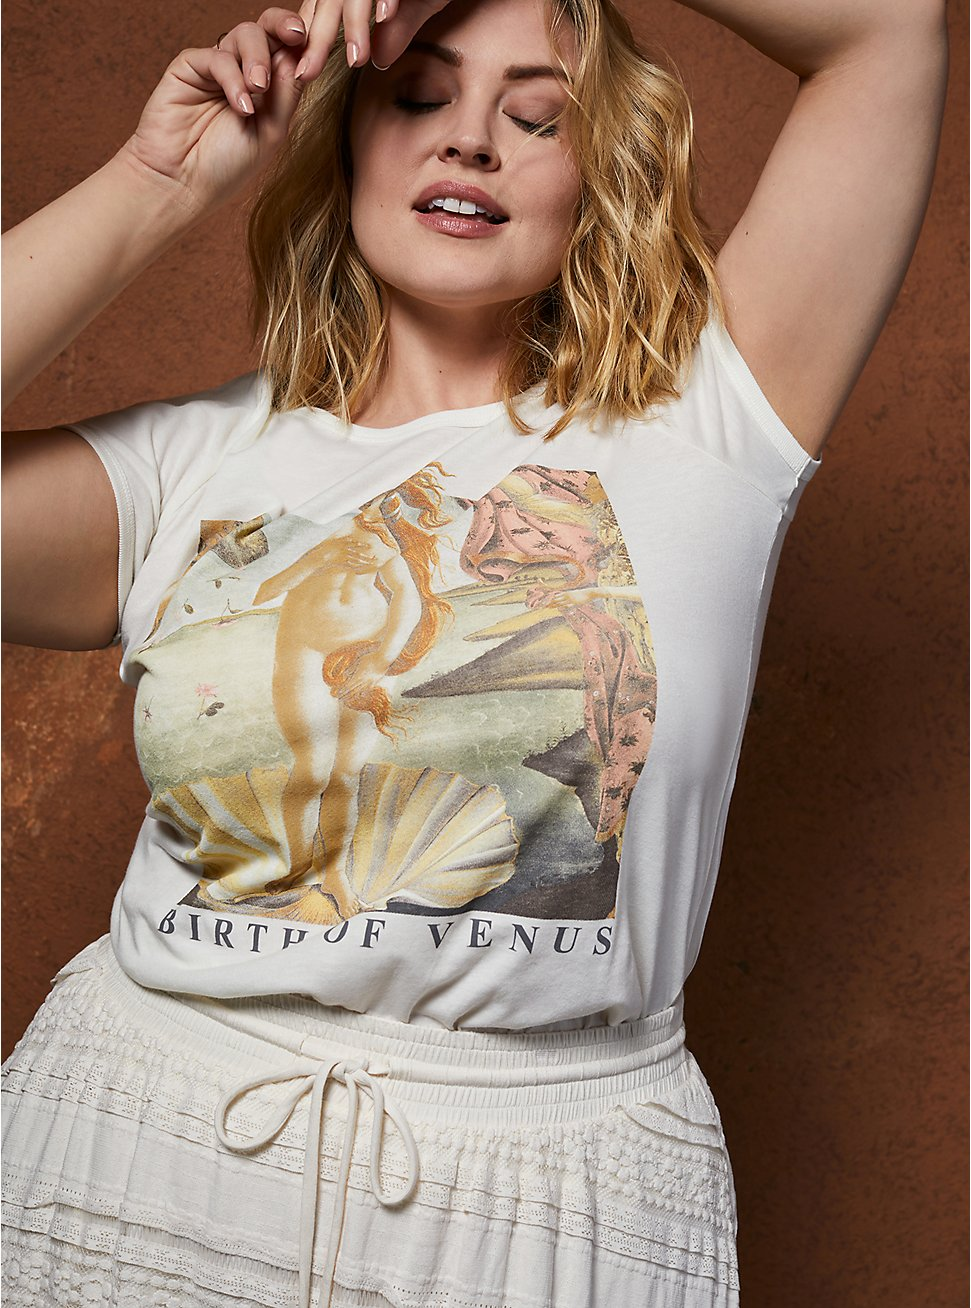 Classic Fit Ringer Tee - Birth Of Venus White, MARSHMALLOW, hi-res